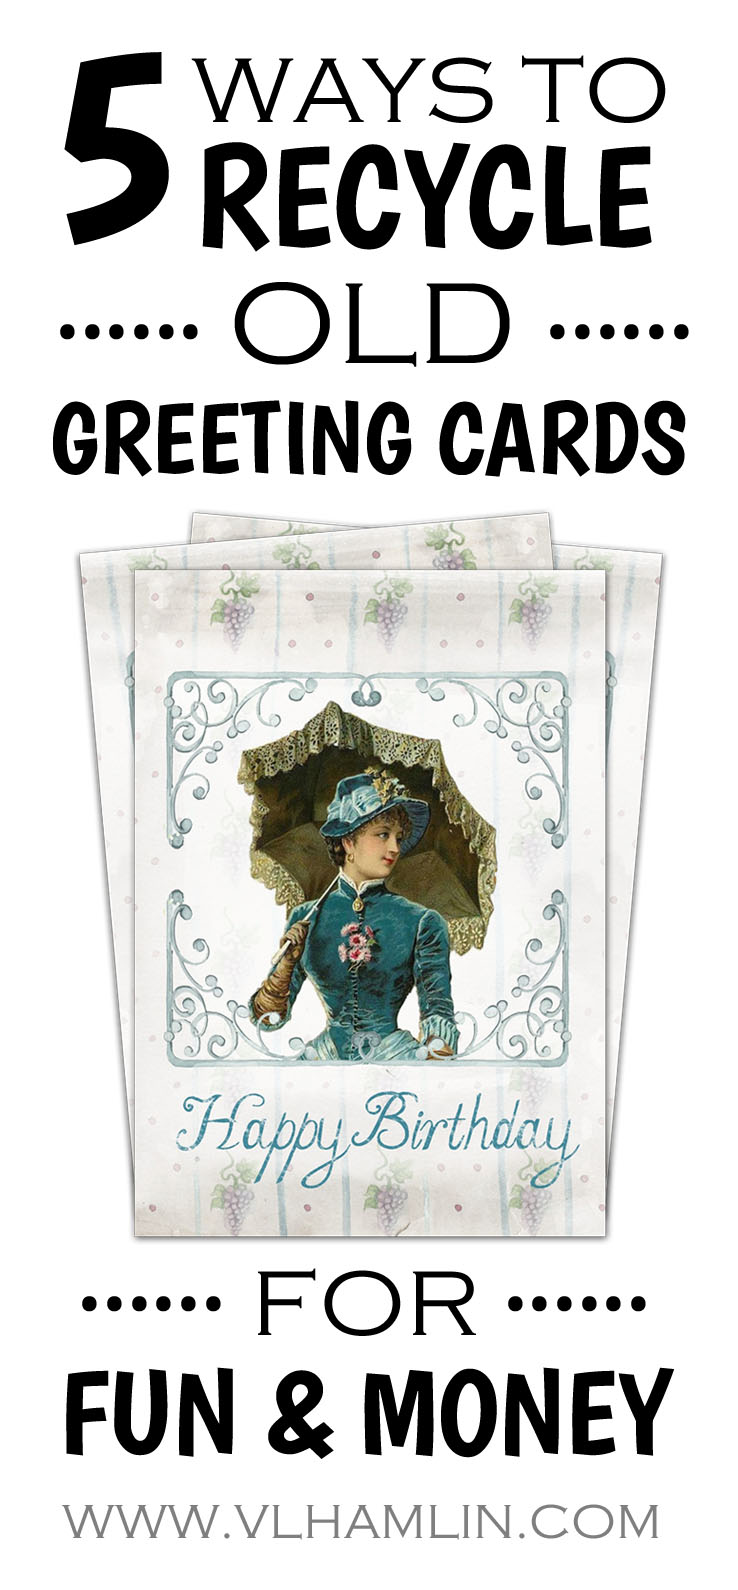 5 WAYS TO RECYCLE OLD GREETING CARDS FOR FUN AND PROFIT